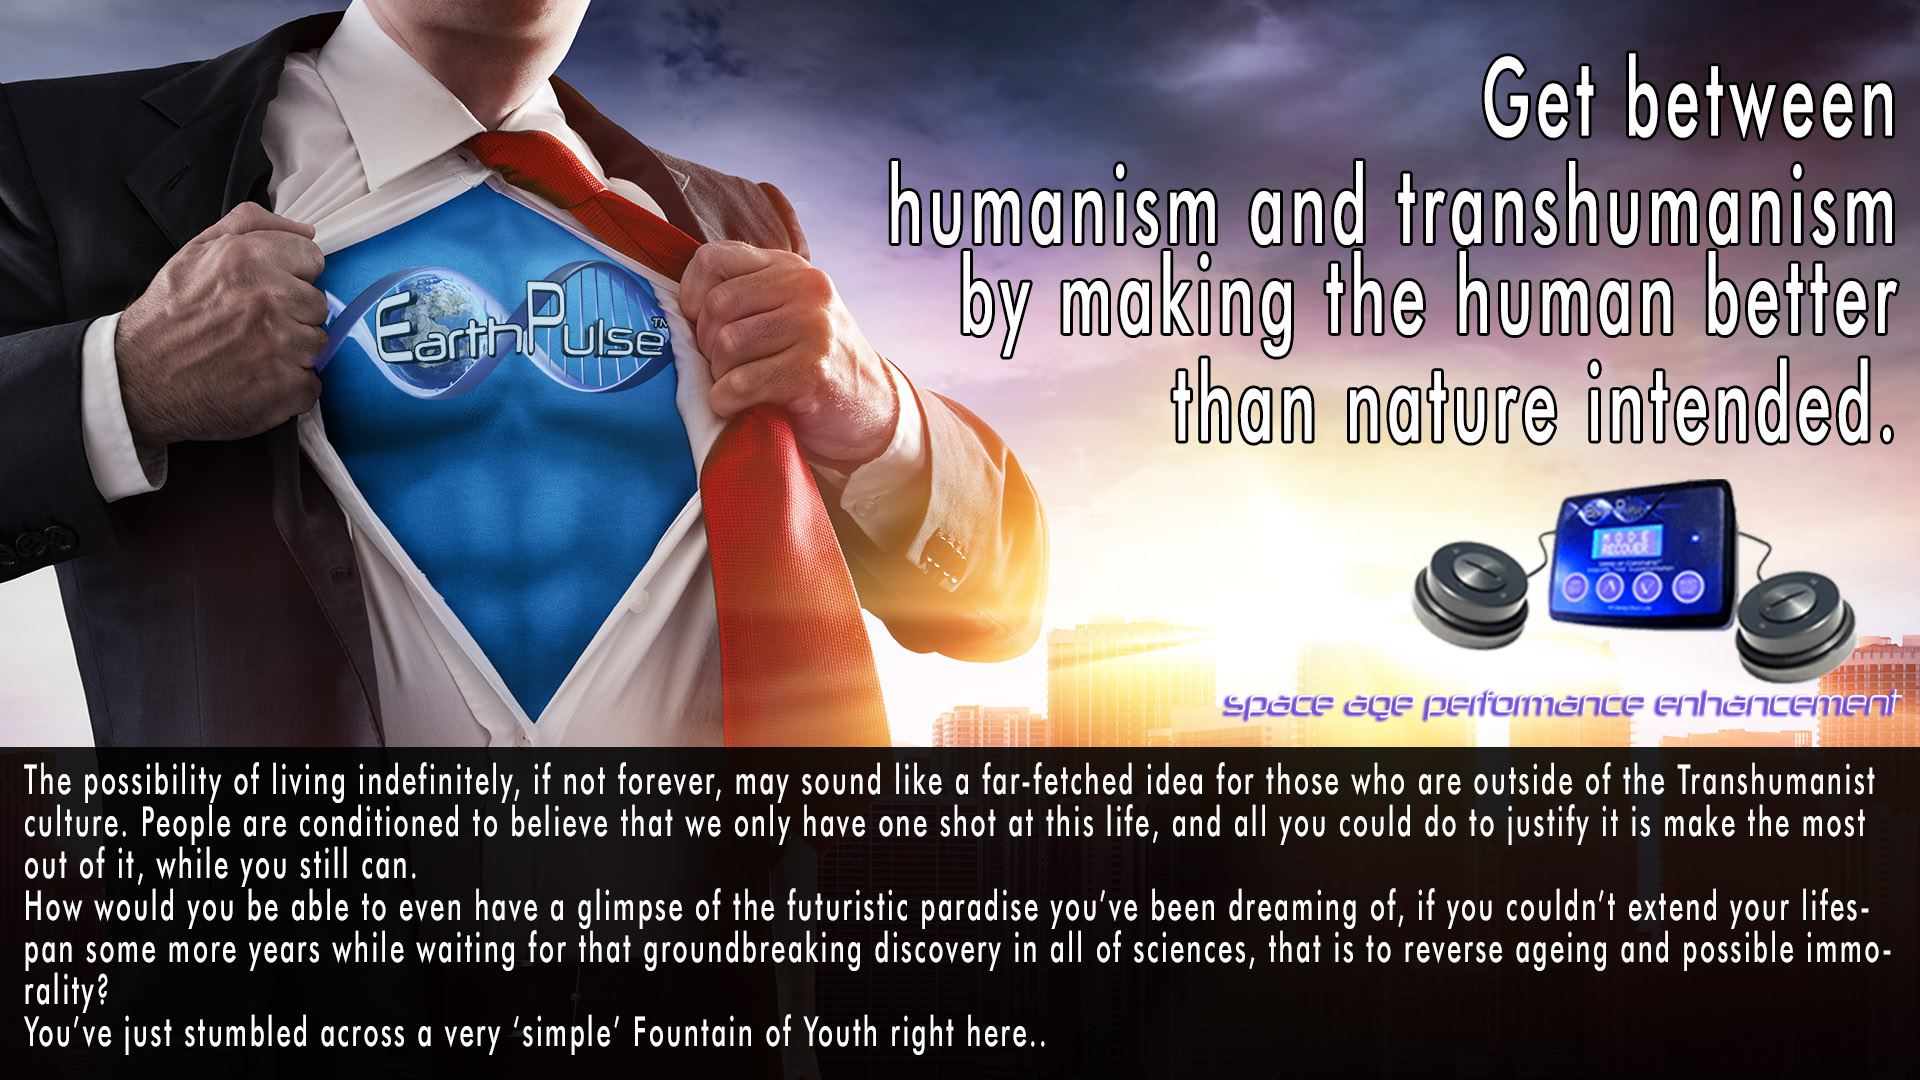 Transhumanize Yourself for Super Human Performance without Nanotechnology or Implants